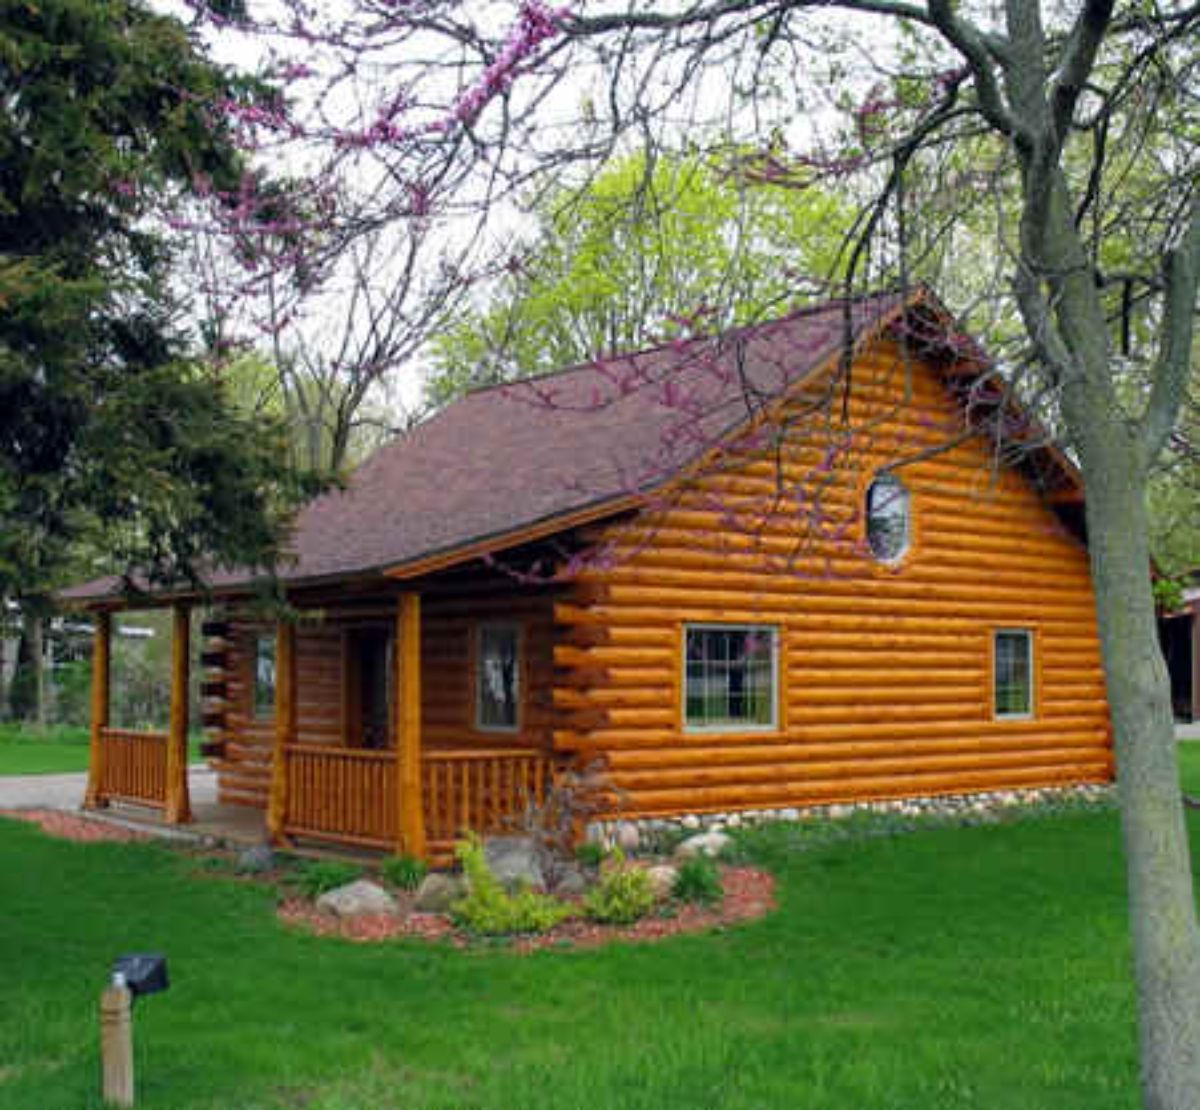 small log cabin surrounded by greenery